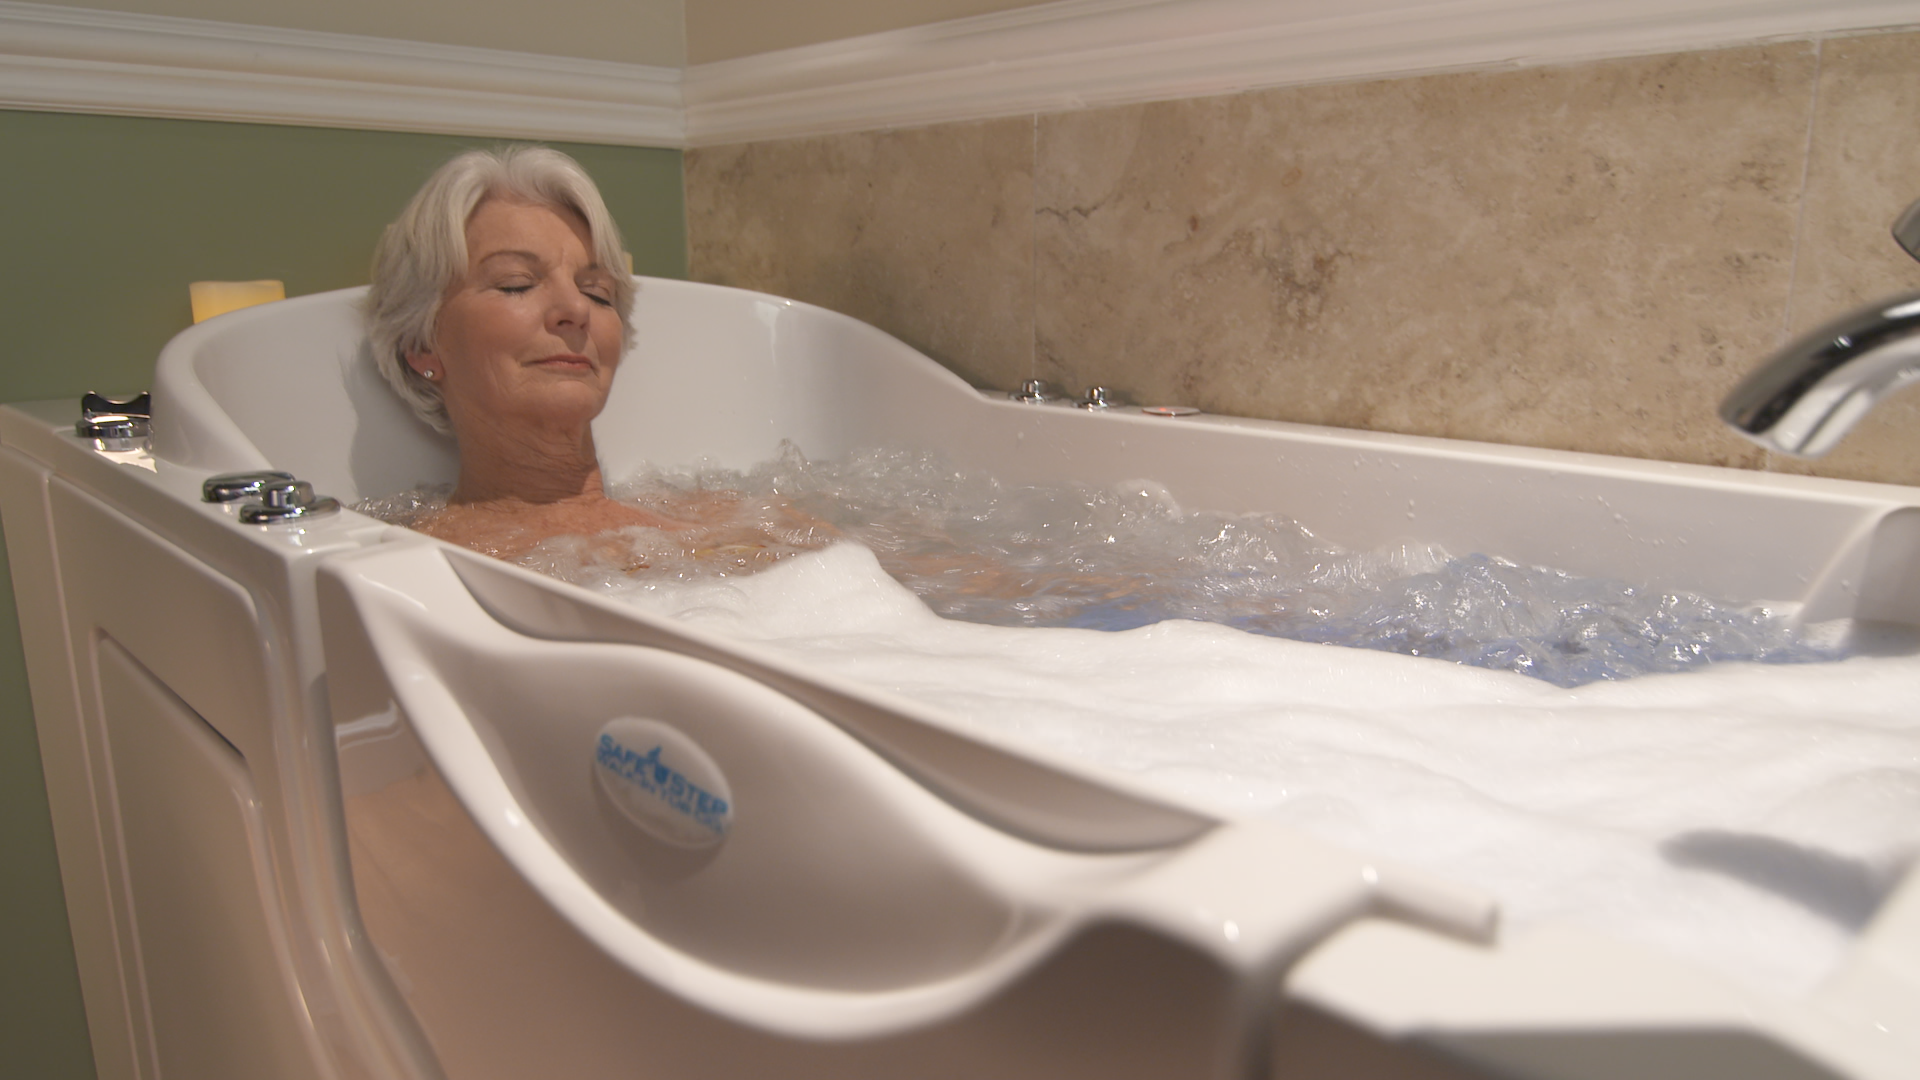 Walk In Tubs The Accessible Solution For Seniors Walk In Tubs